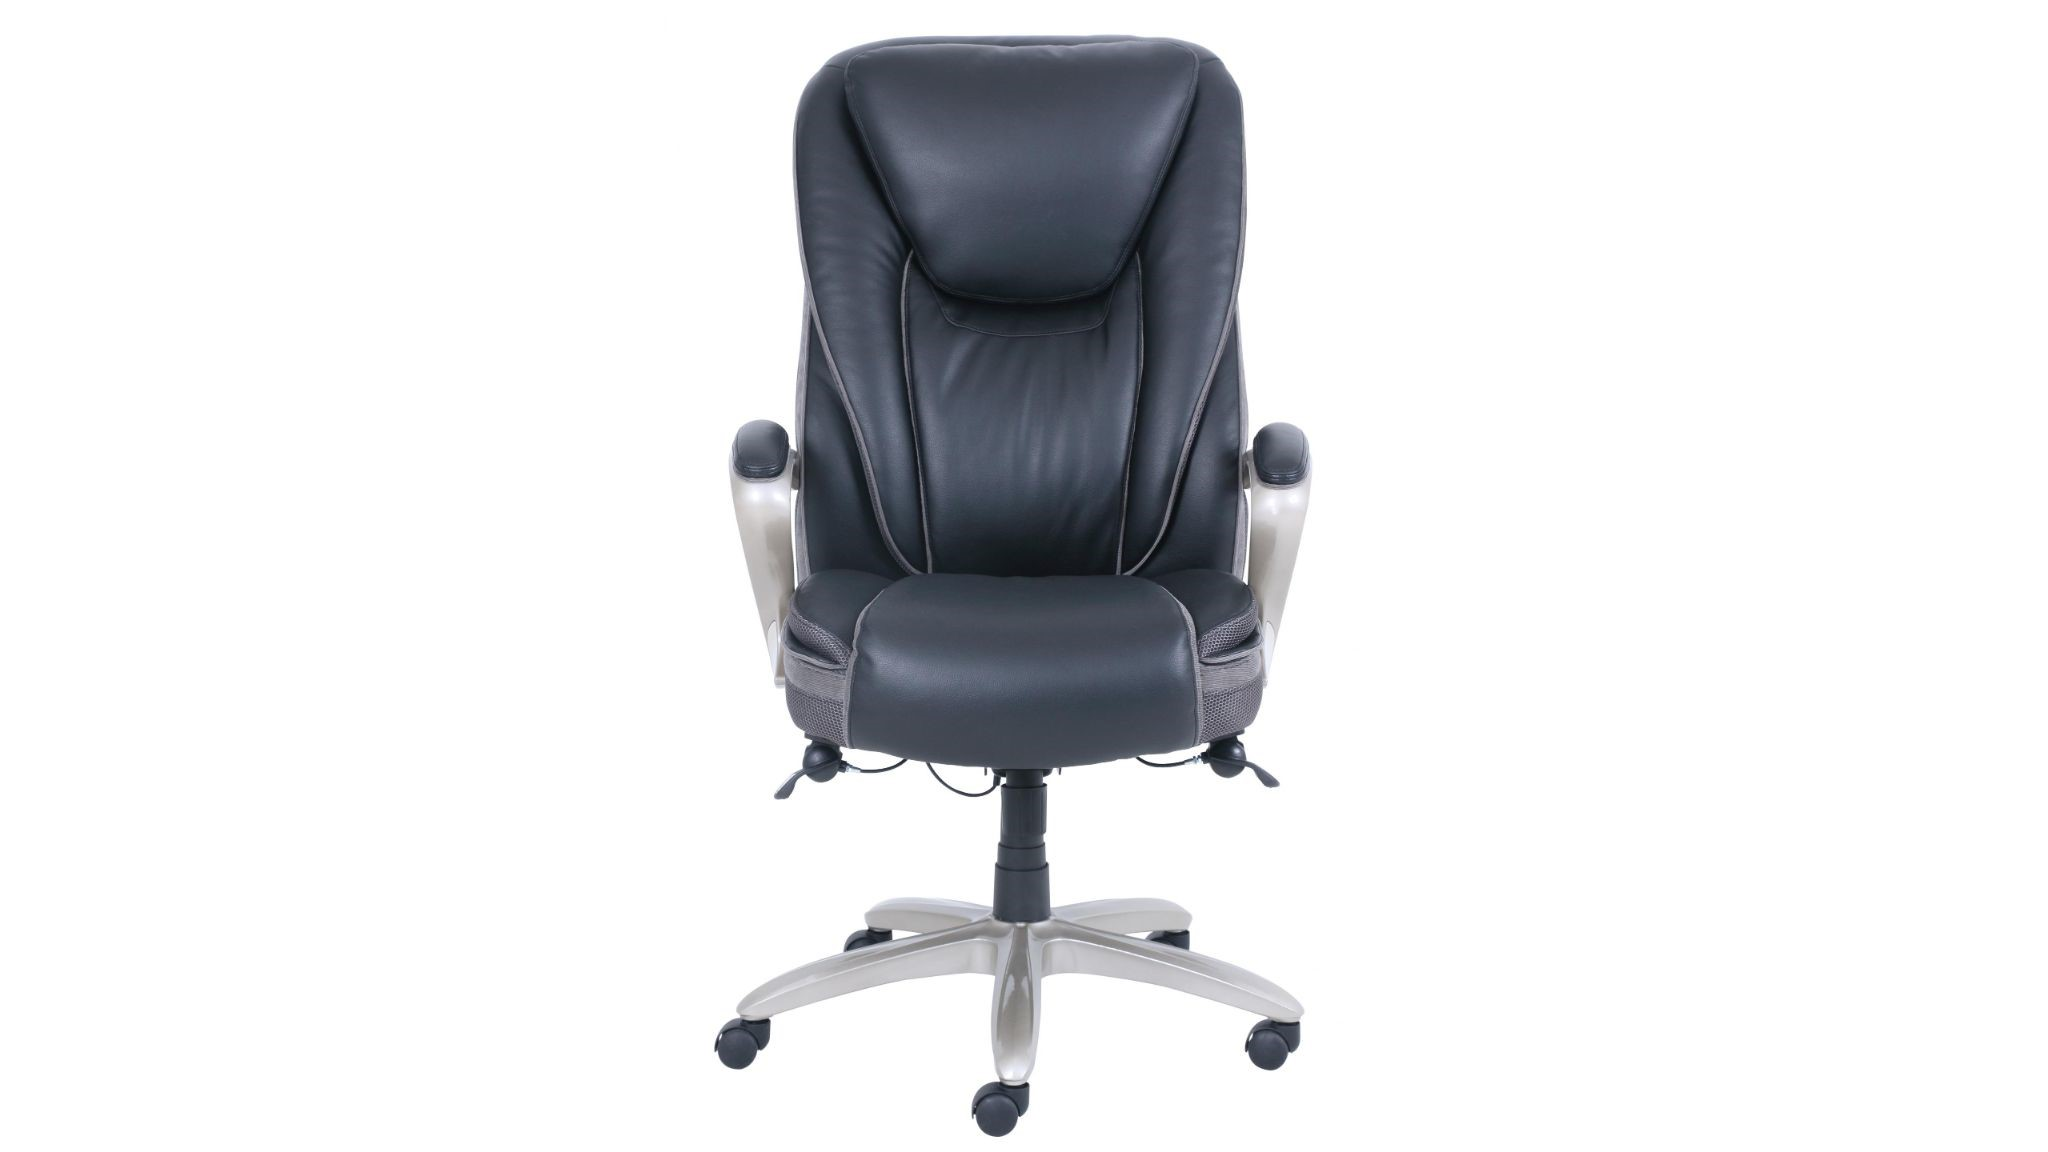 Best 5 types of office Chairs